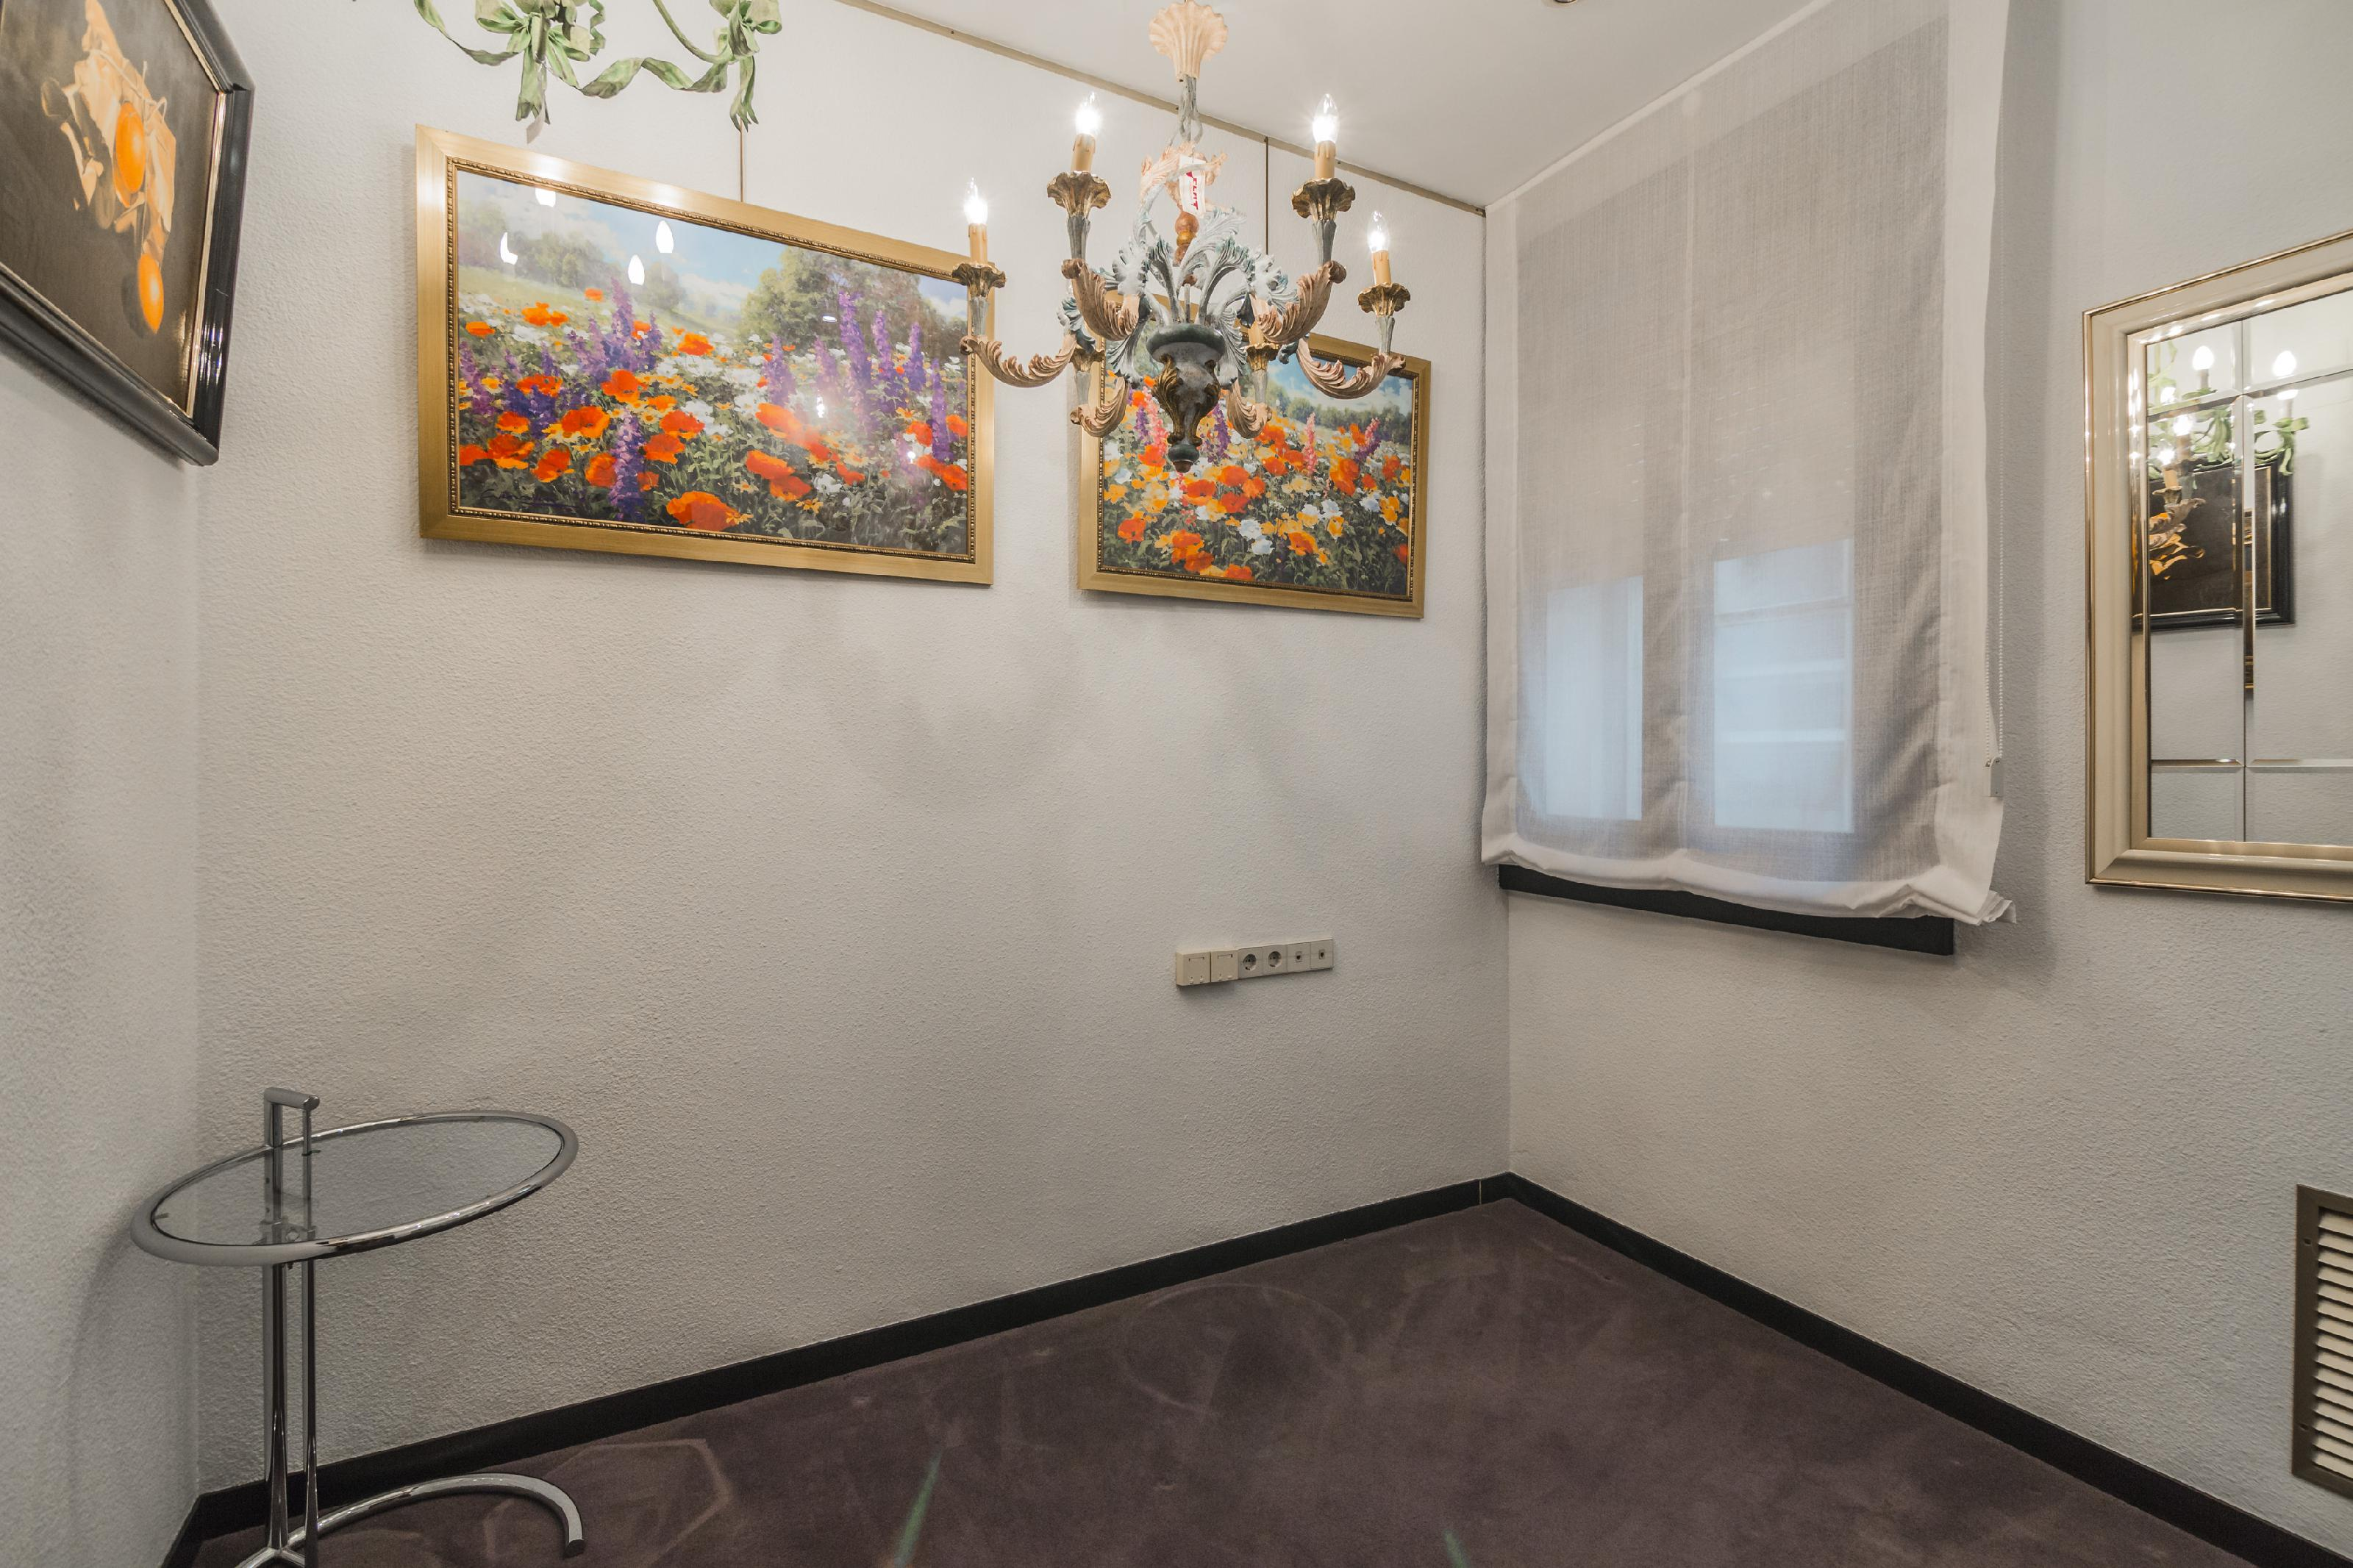 223855 Penthouse for sale in Les Corts, Les Corts 16